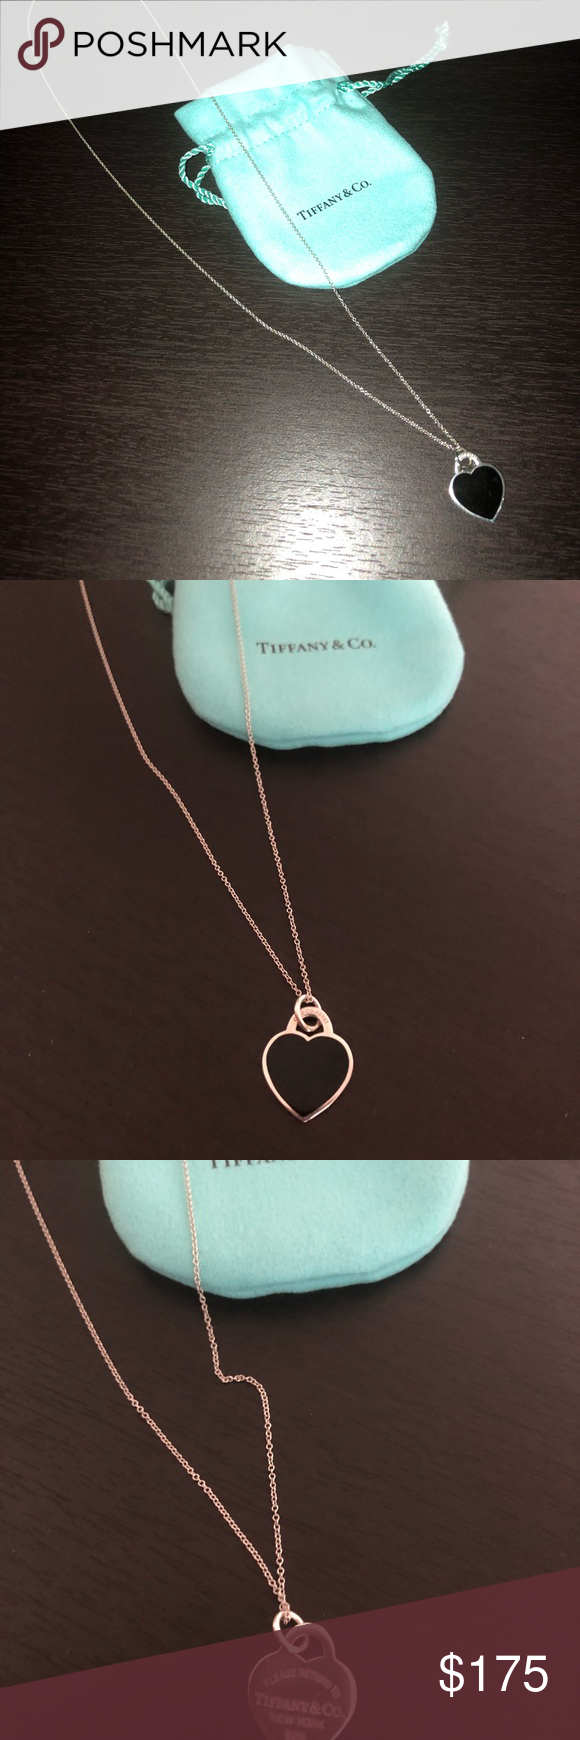 8f1aef5829fa0 Tiffany & Co. Return to Tiffany Black Heart Black Heart Return to ...